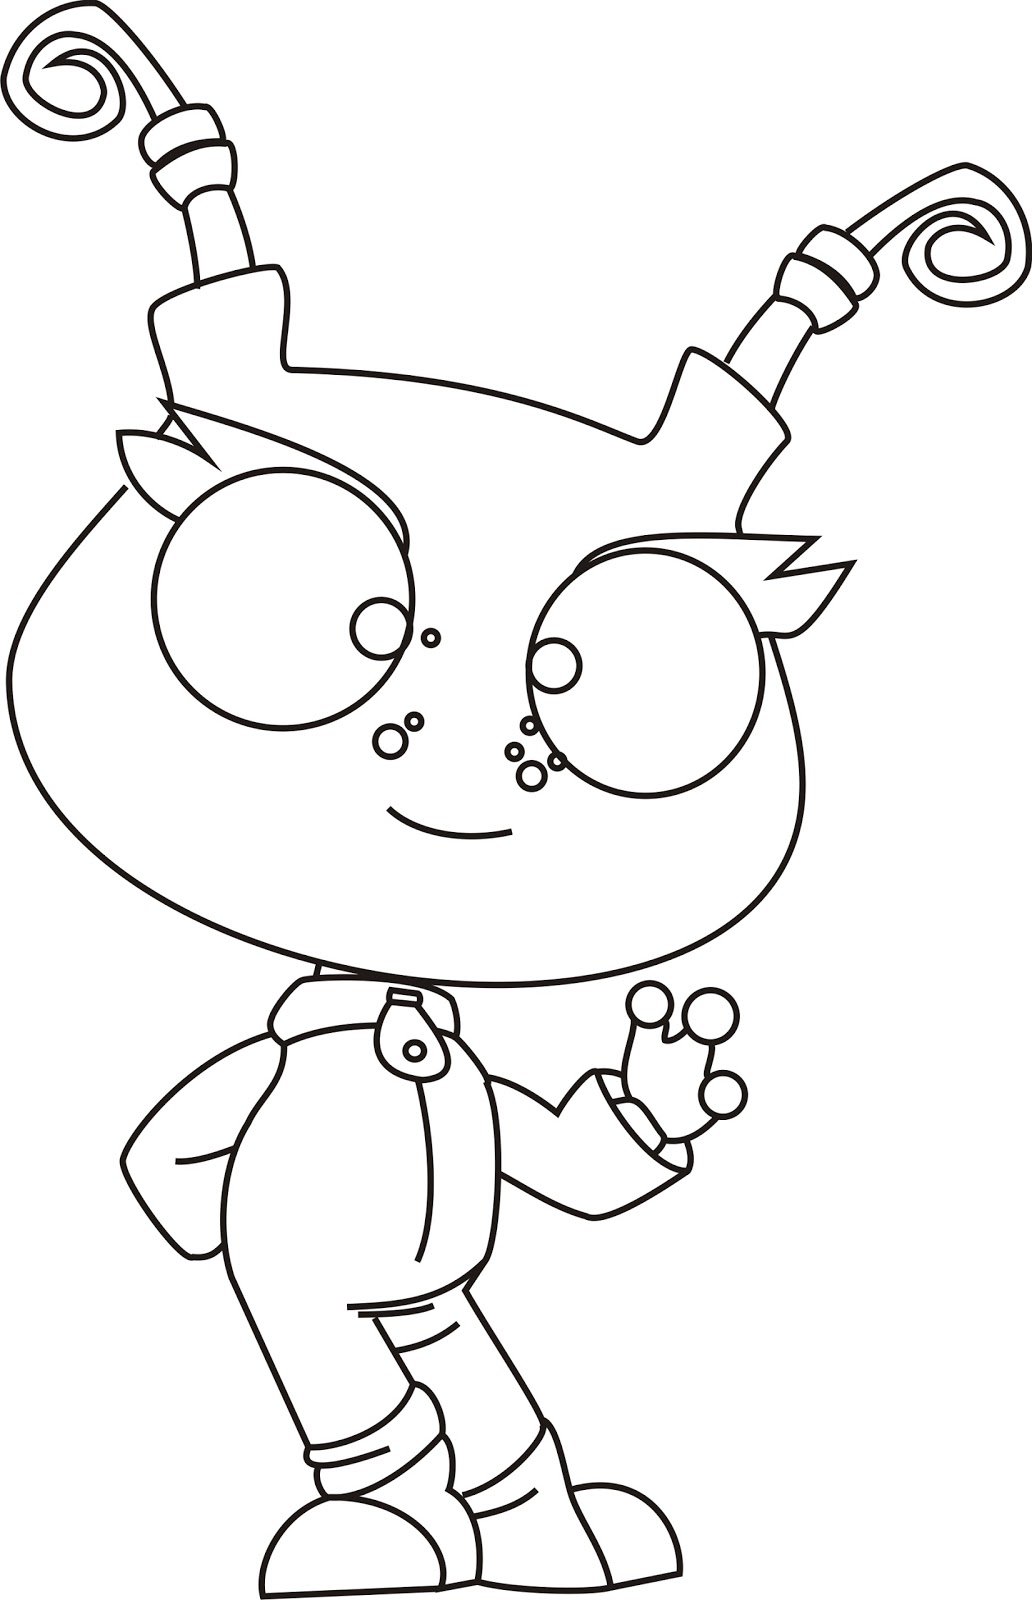 Free Coloring Pages Of Iggle Piggle Iggle Piggle Colouring Pages